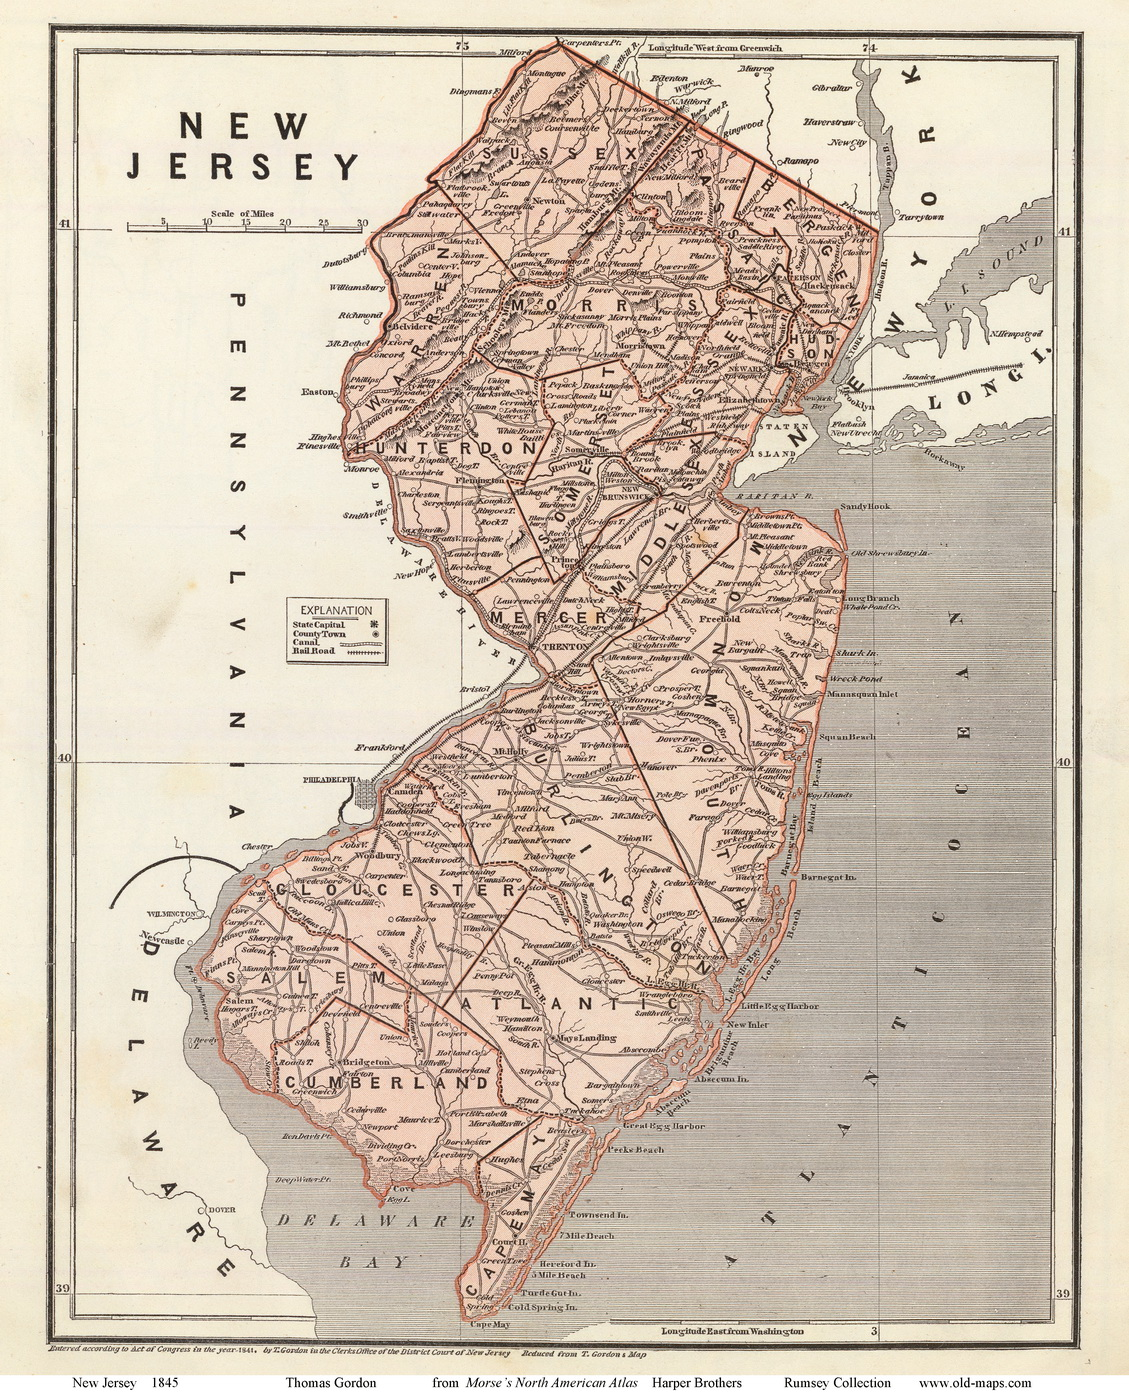 New Jersey State Maps - Page 2